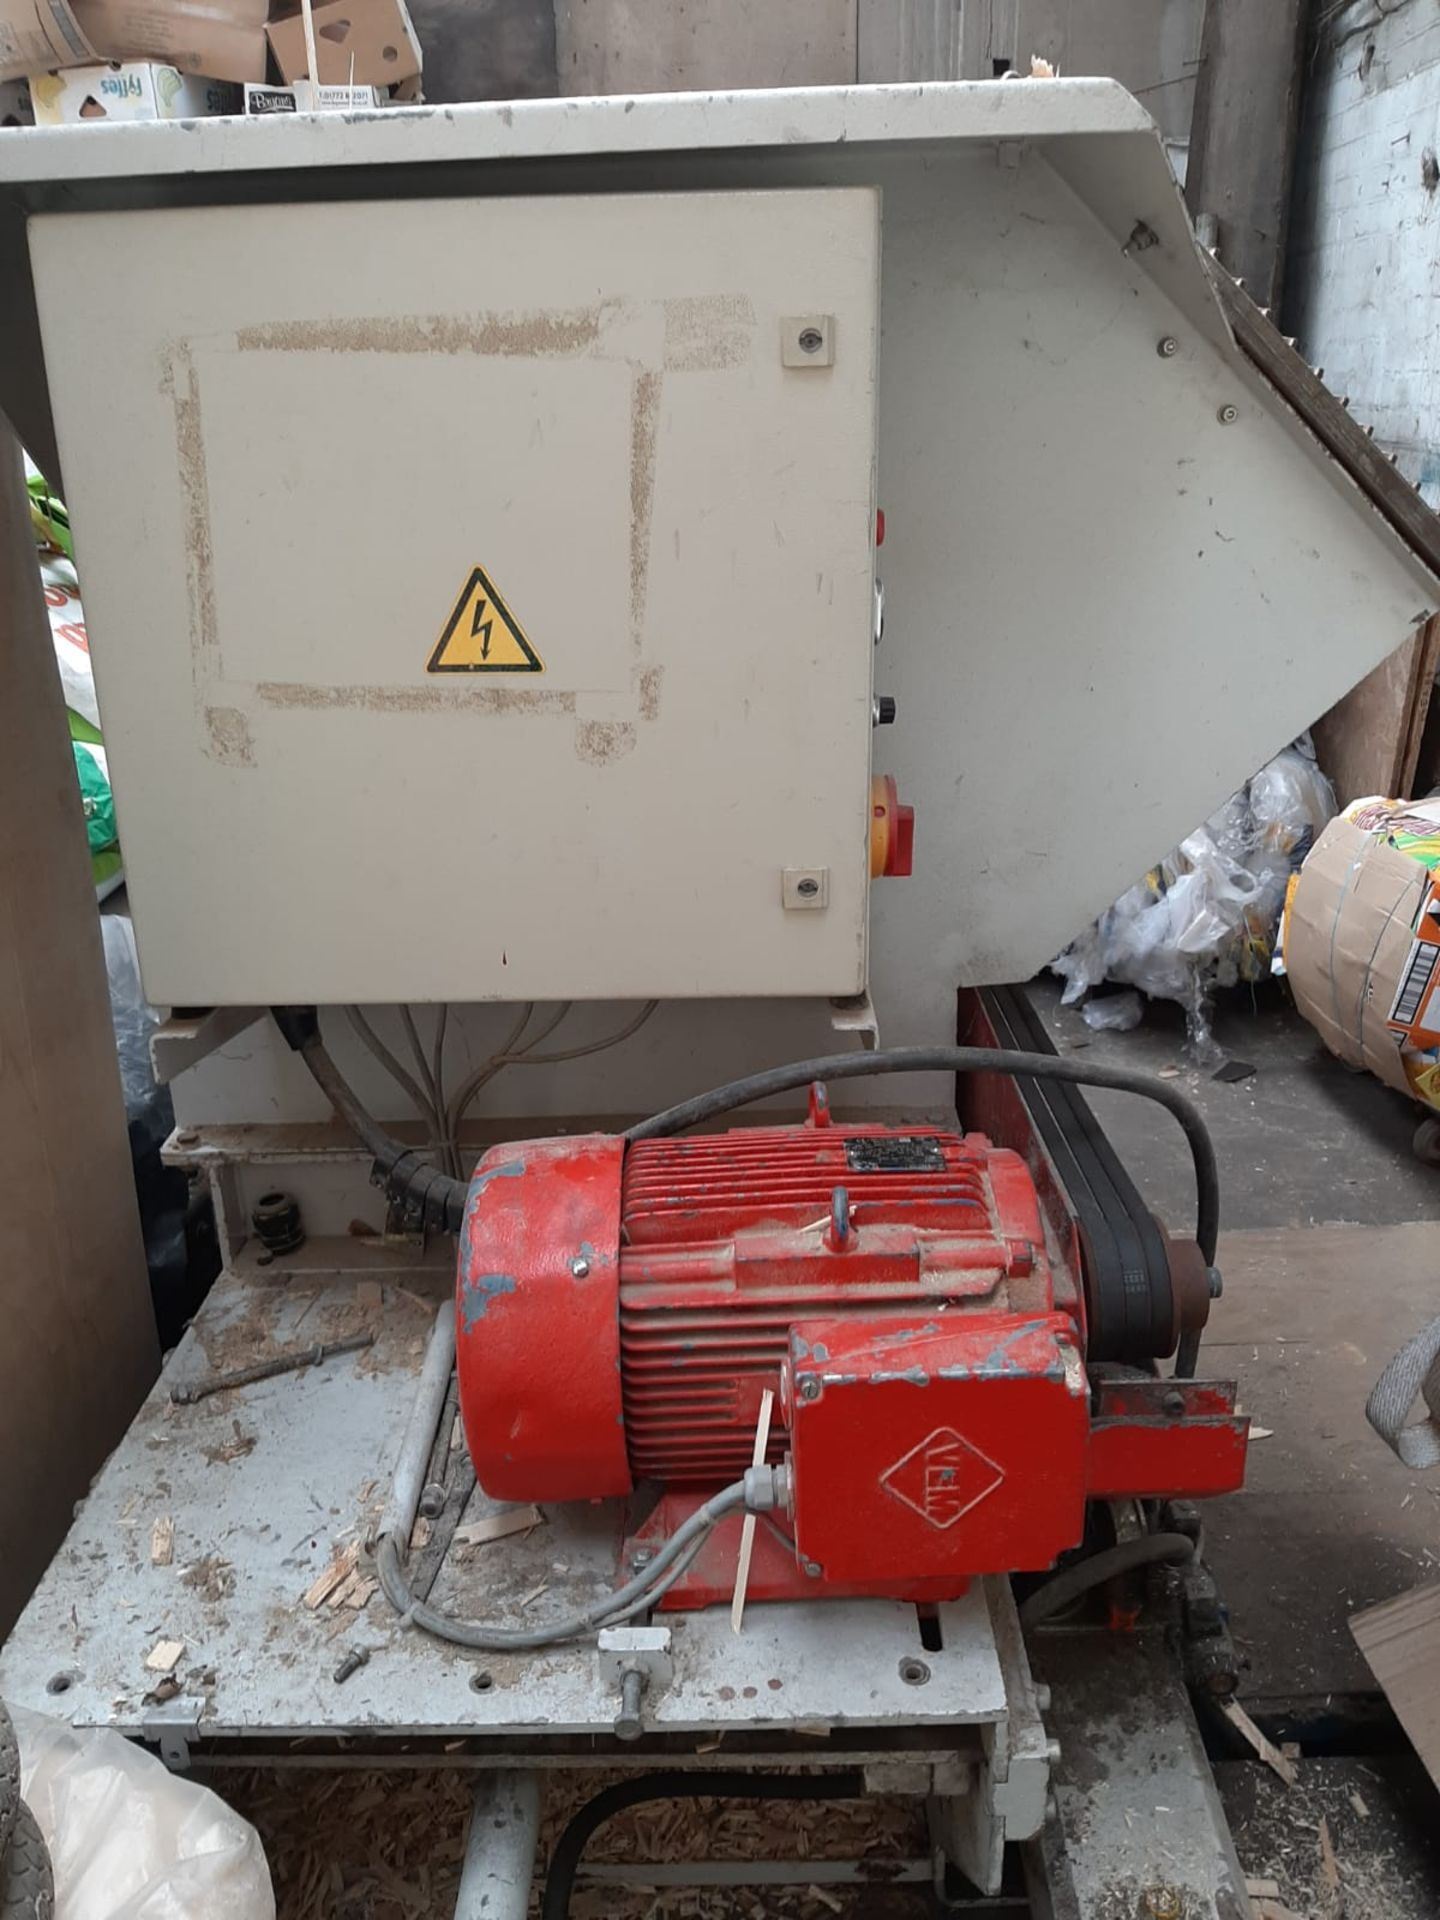 Lot 150 - VECOPLAN VAZ 70/80 BIOMASS WOOD SHREDDER, FULLY OPERATIONAL CAN BE SEEN WORKING *NO VAT*